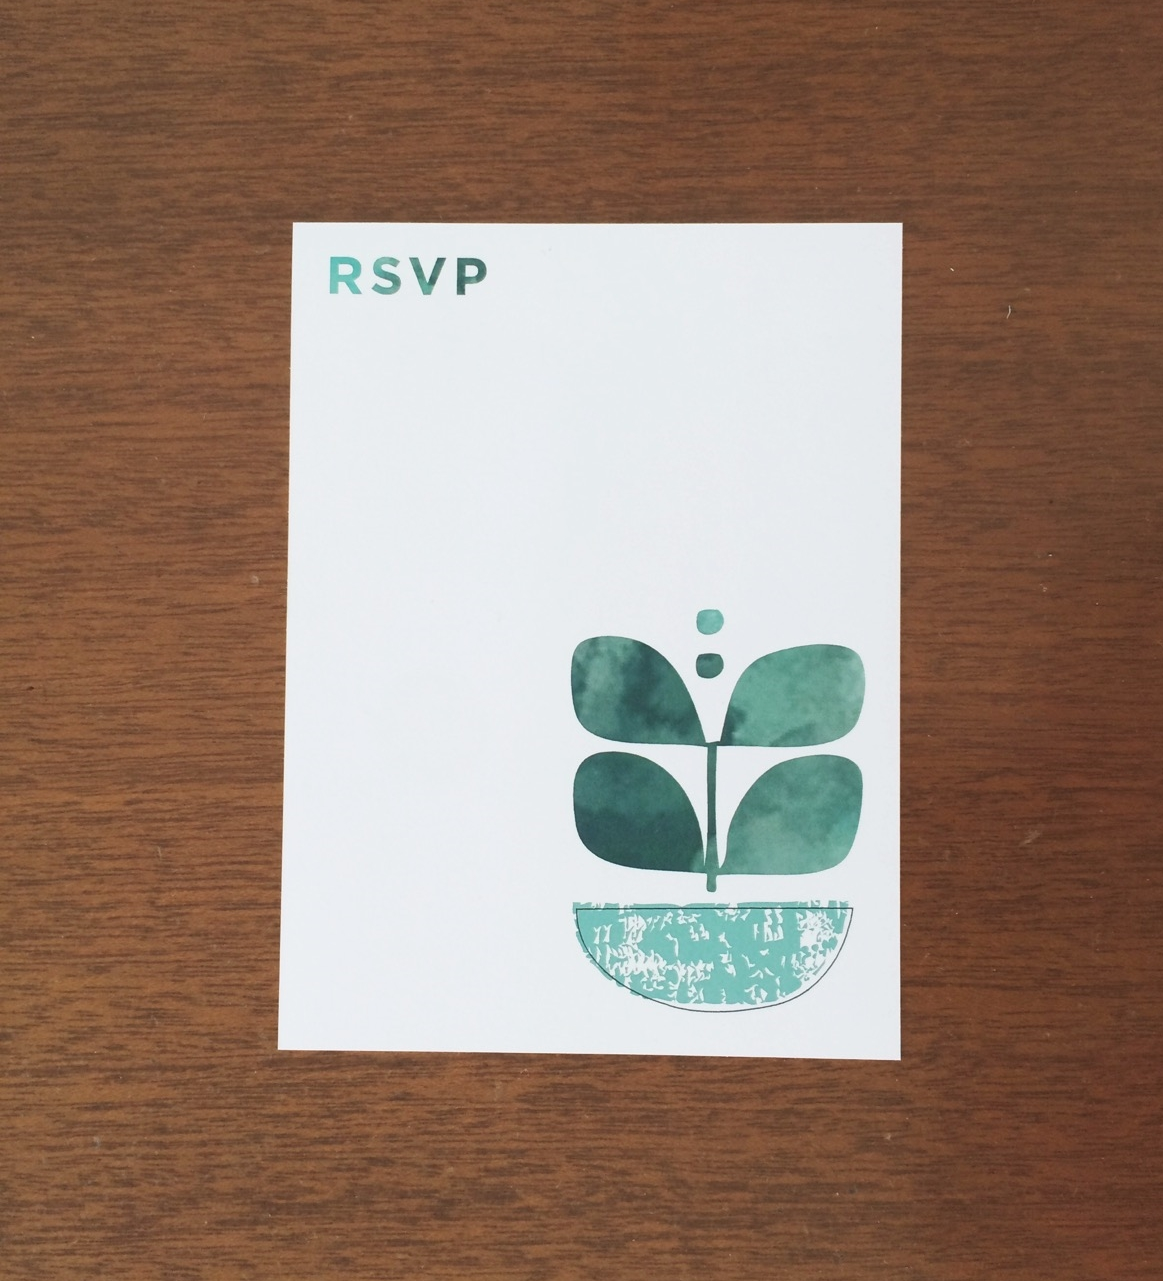 Our RSVP's.